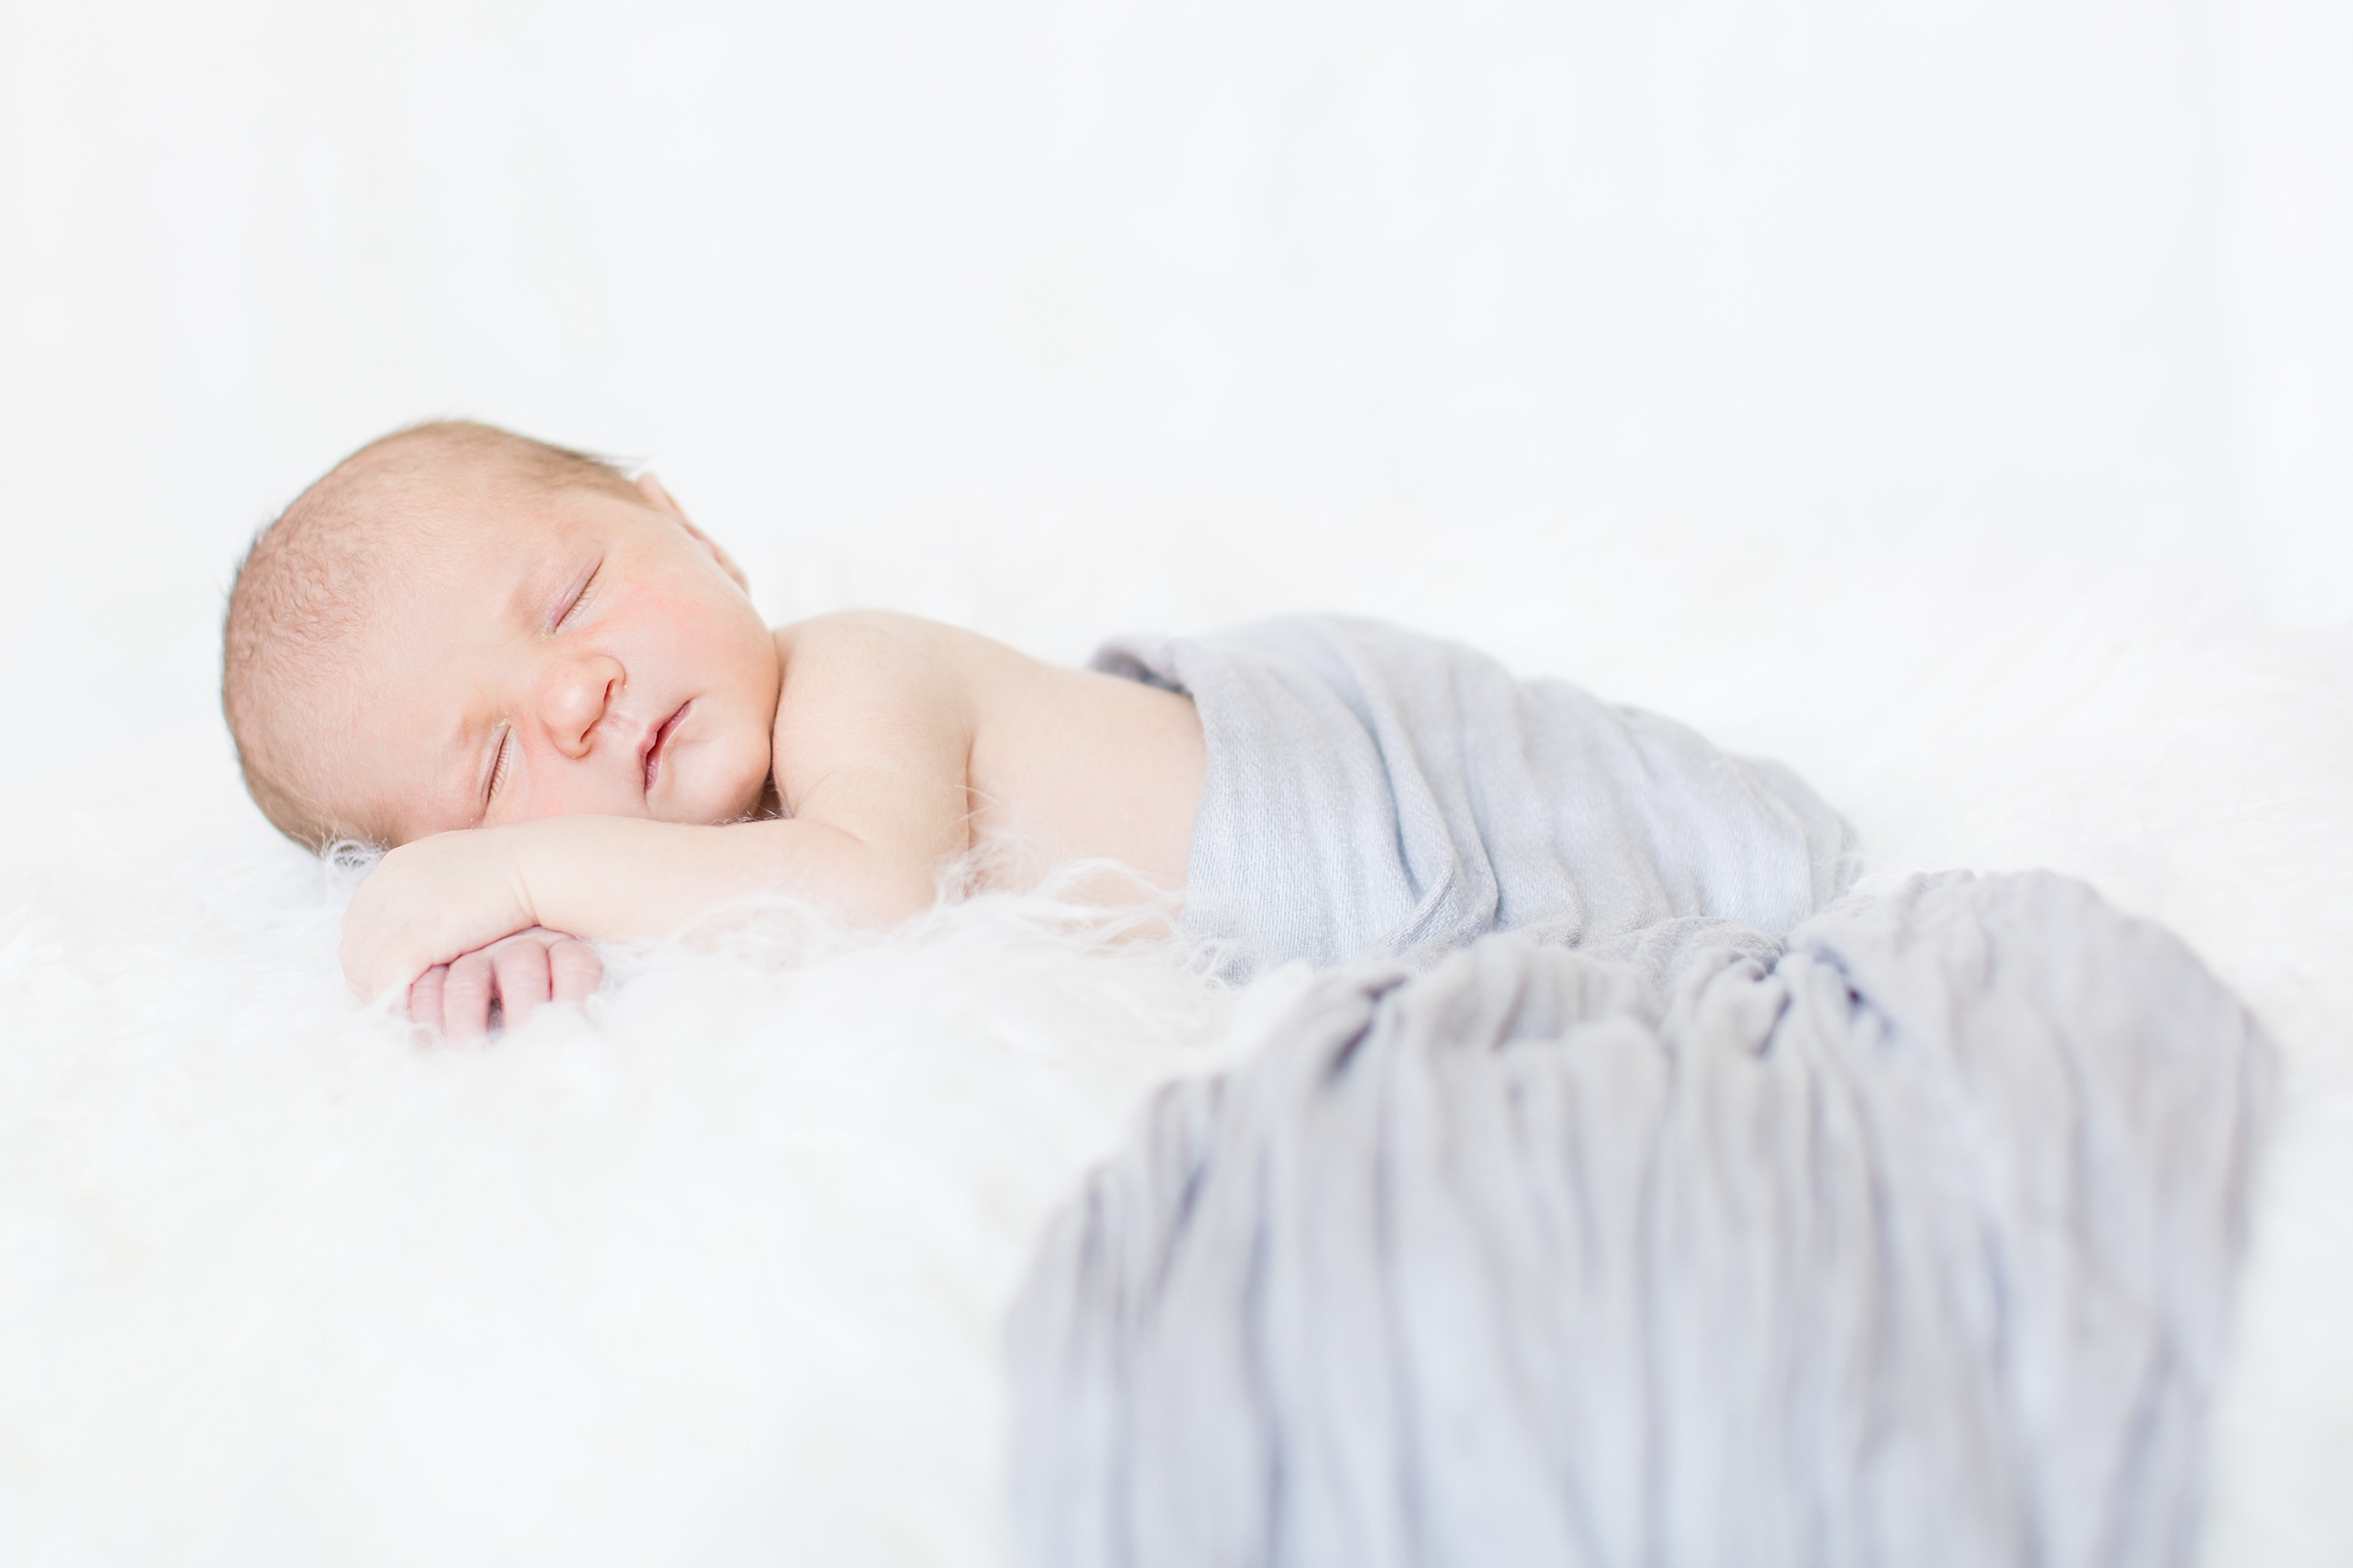 Landon-Schneider-Photography-Newborn-Session-Texas_0135.jpg